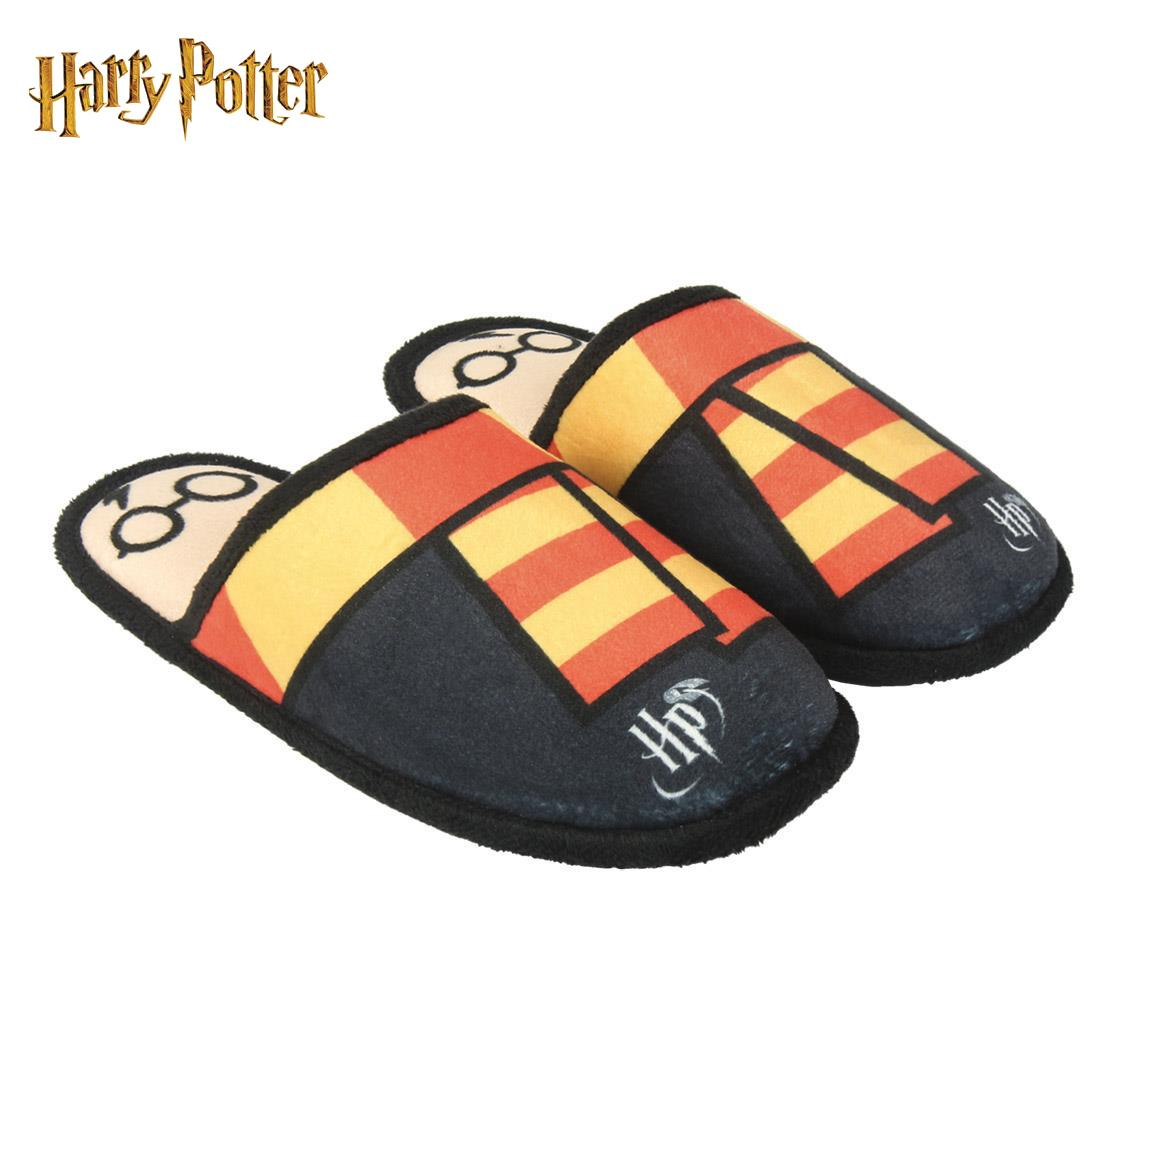 Single Home Slippers Open Premium Harry Potter